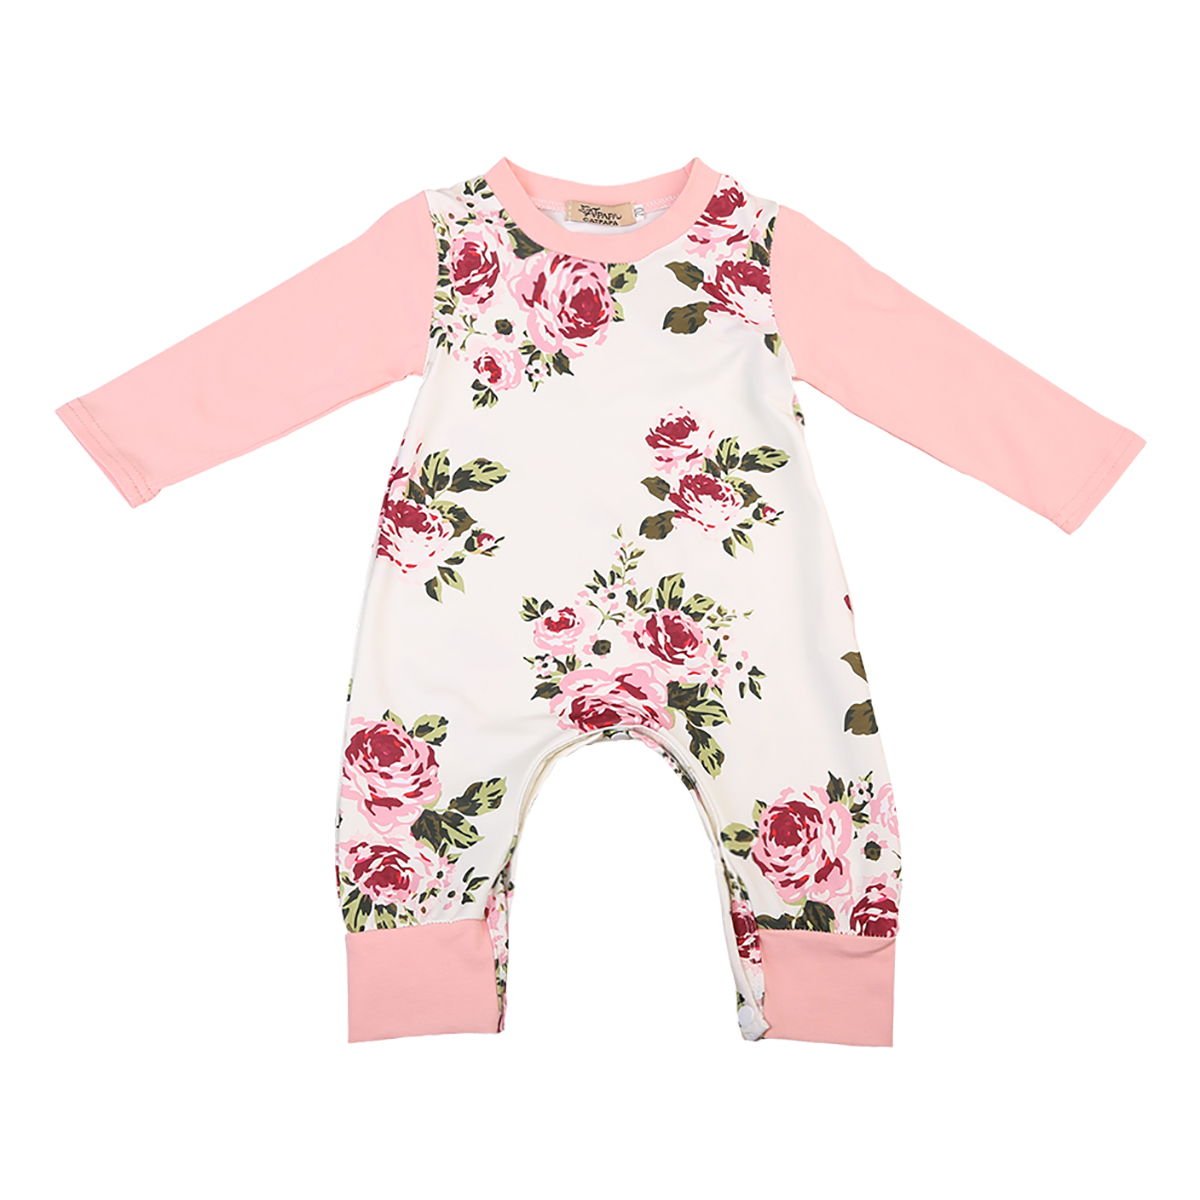 Infant Kids Baby Girl Romper Floral Cotton Long Sleeve Jumpsuit Clothes Outfits Set HOT